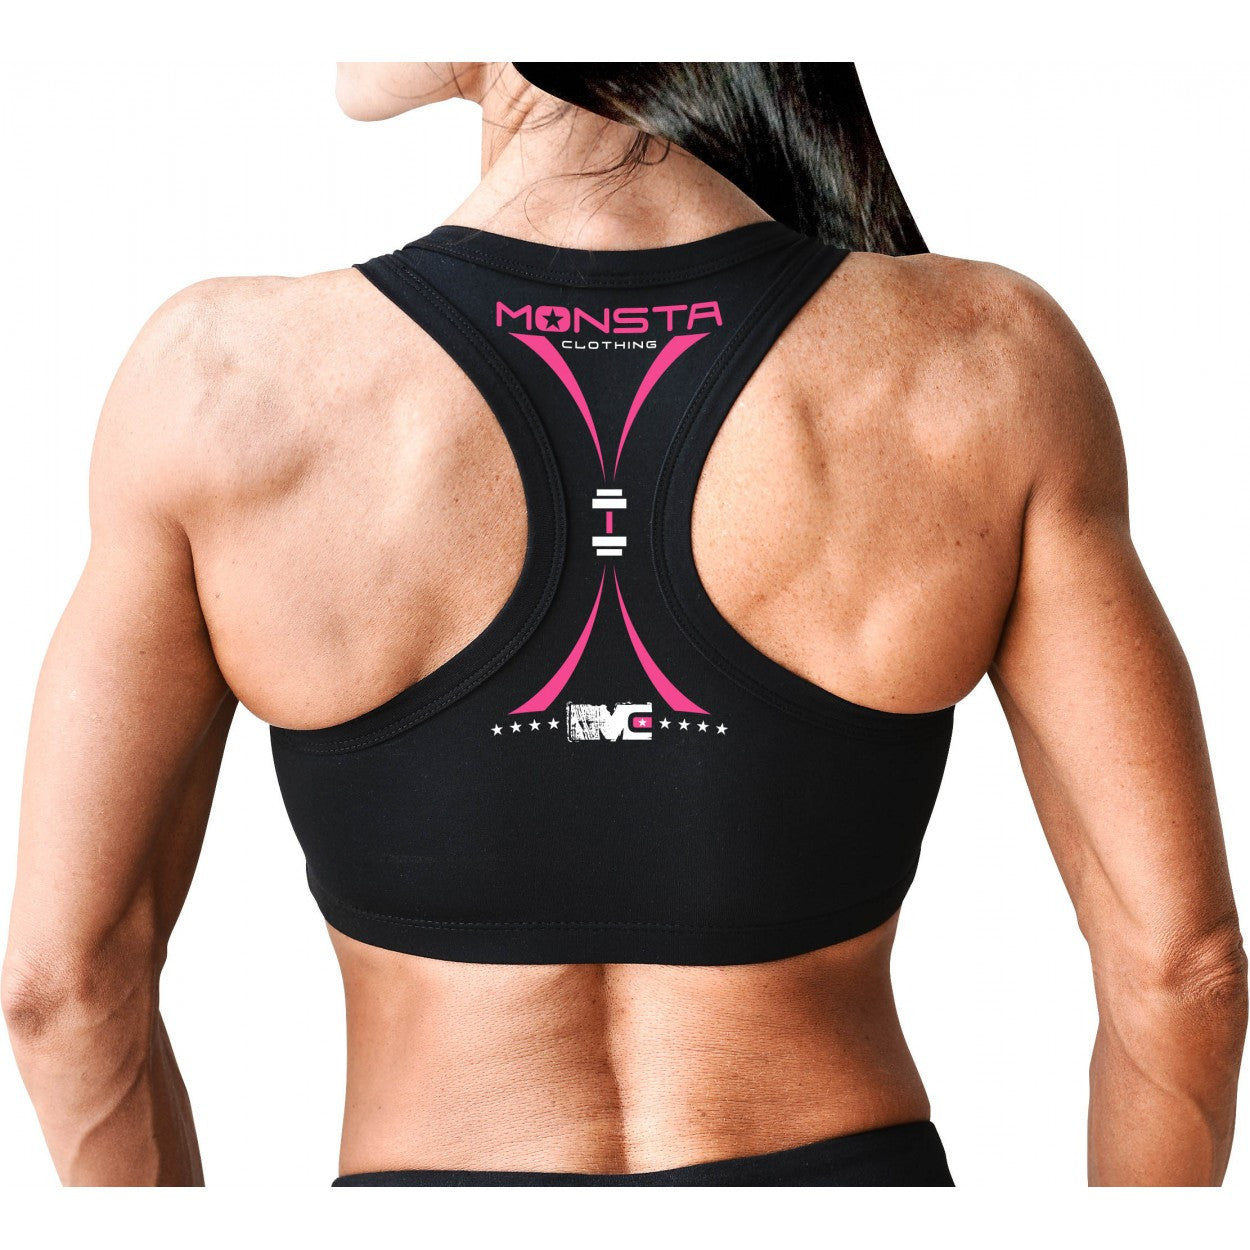 Sports Bra: Relentless - Monsta Clothing Australia